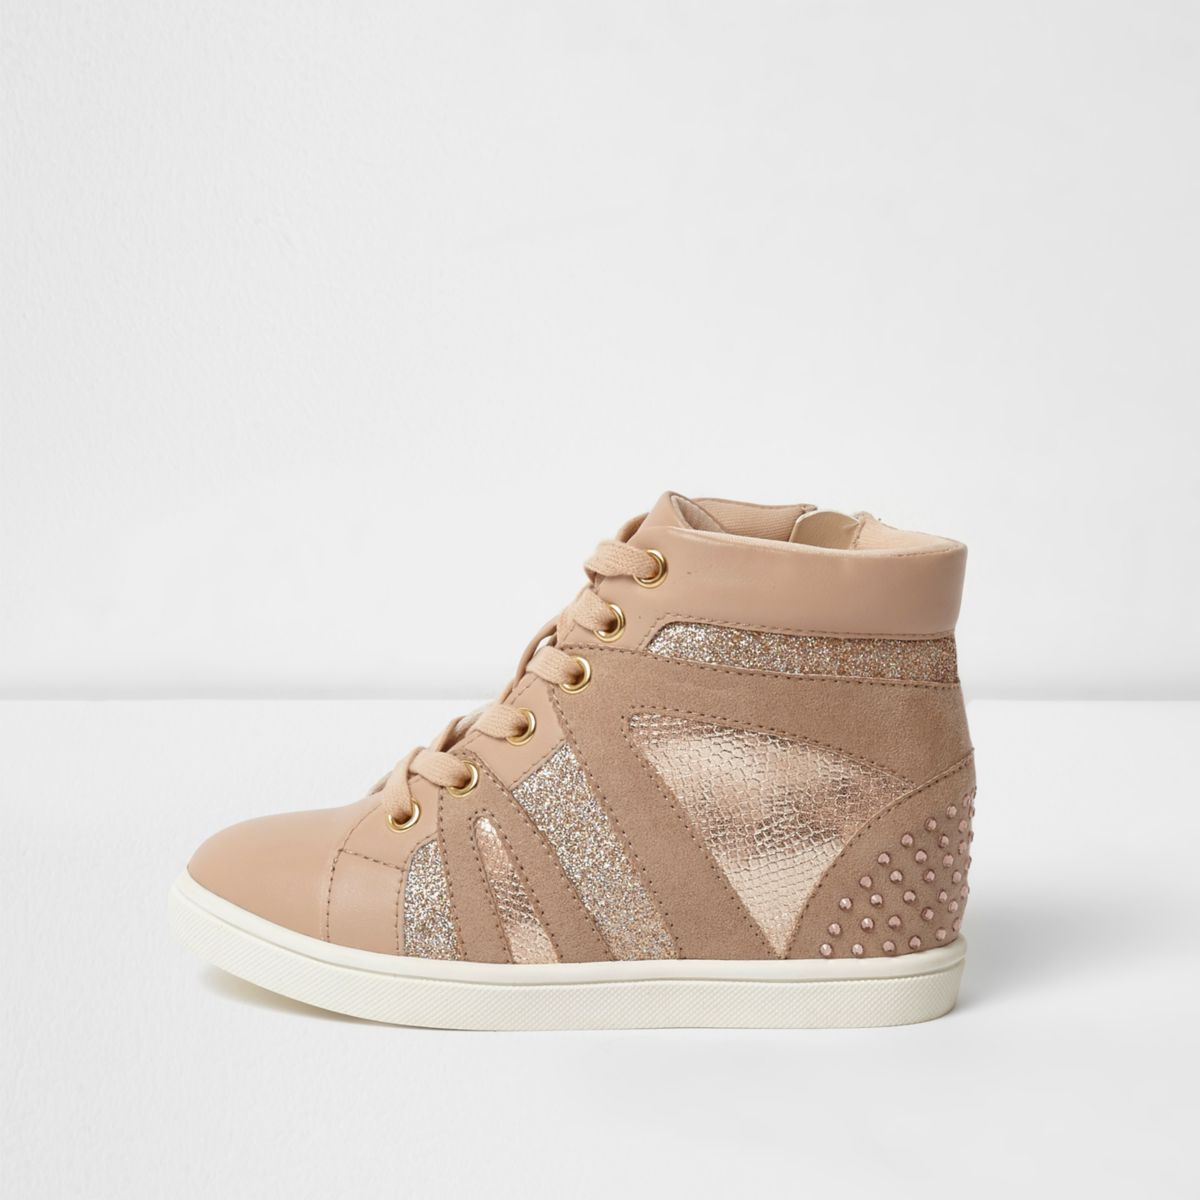 Girls pink glitter high top wedge trainers